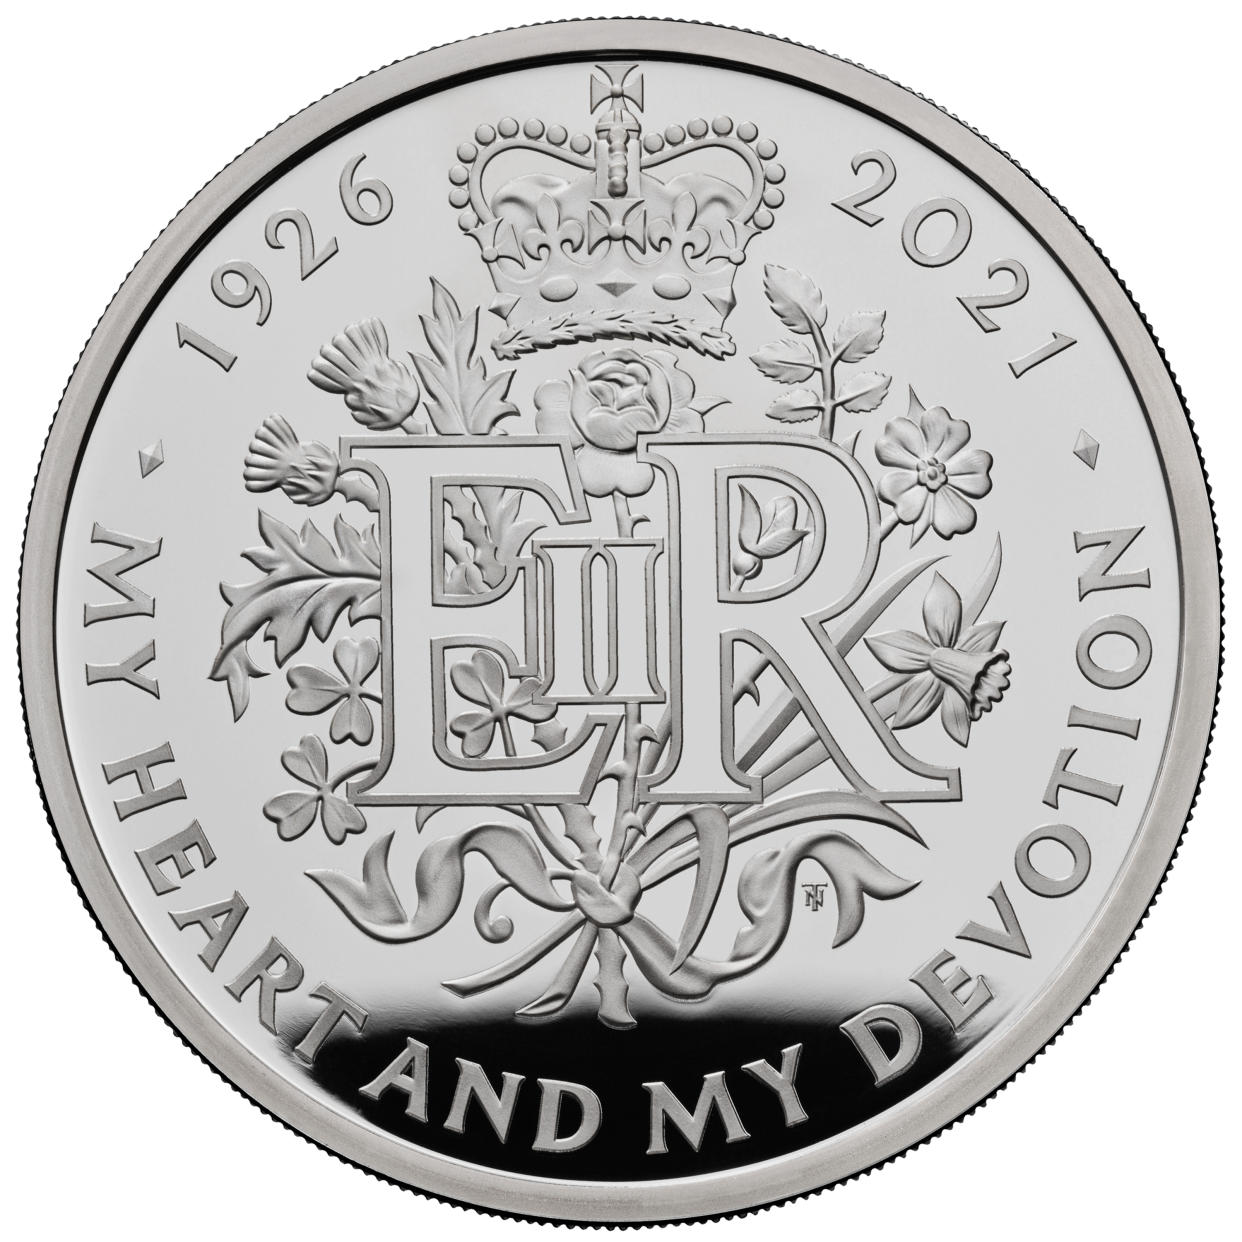 The £5 coin celebrating the 95th birthday of the Queen